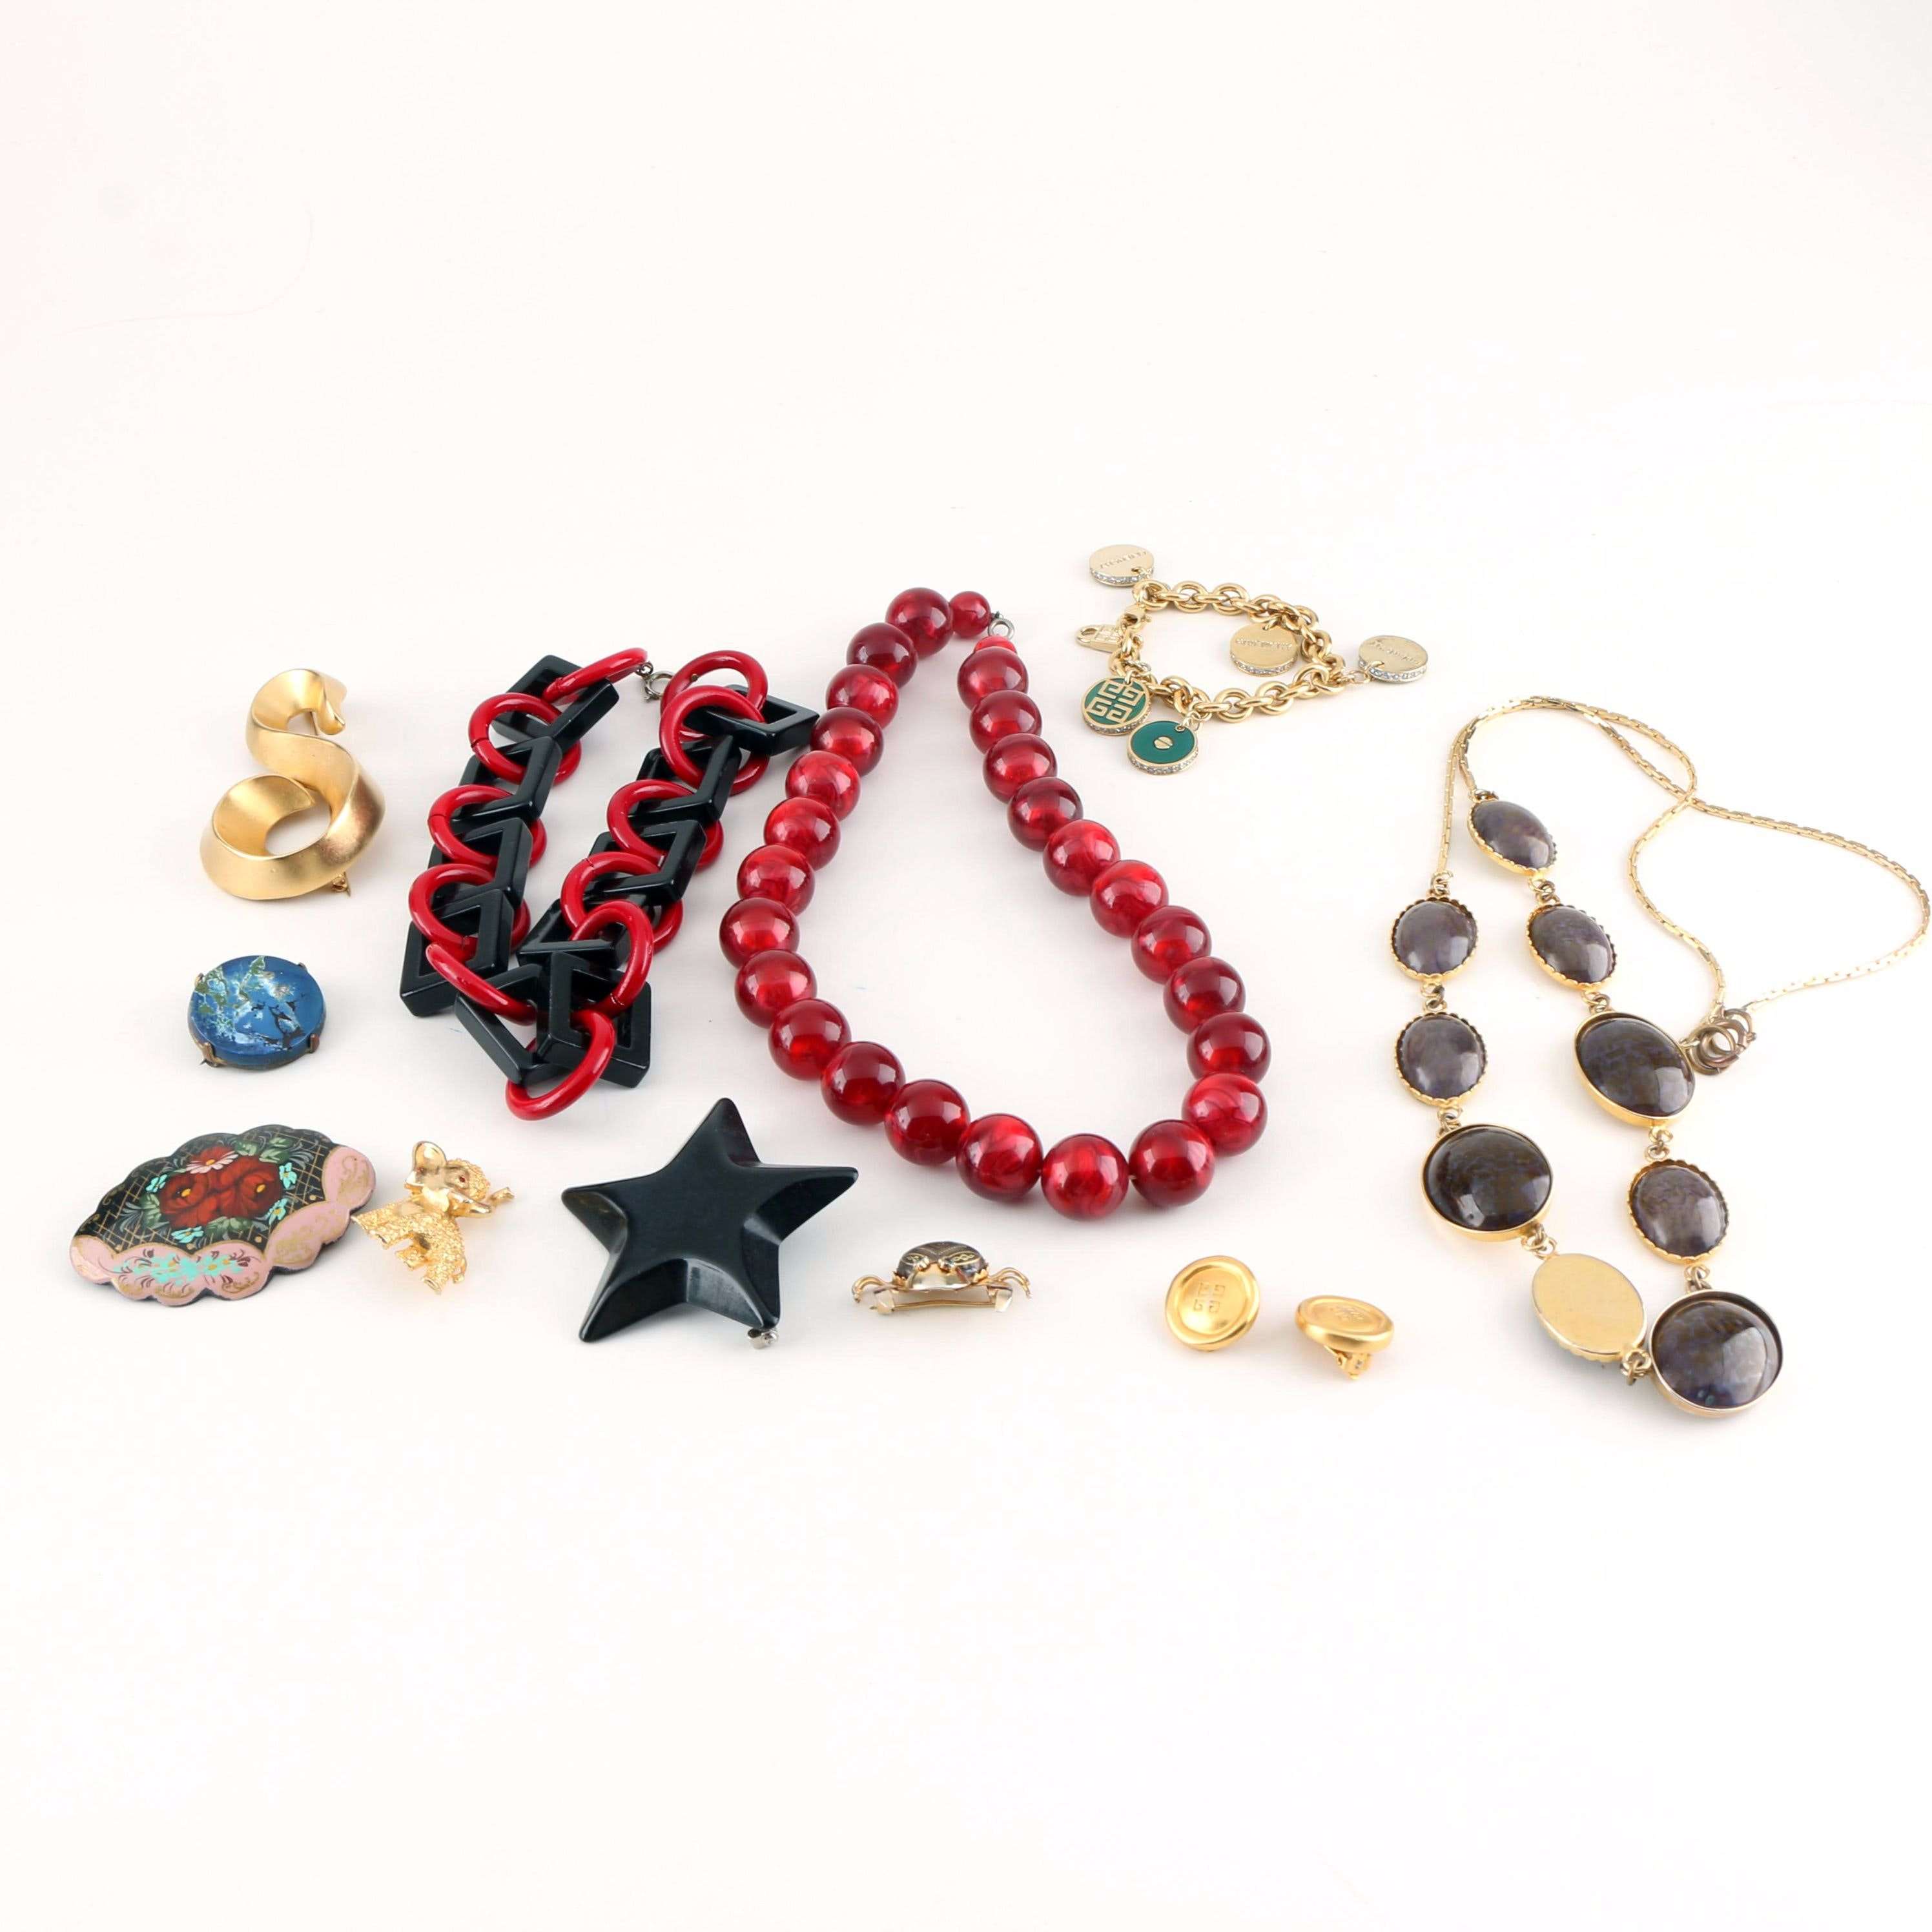 Assortment of Costume Jewelry Including Valentino and Givenchy